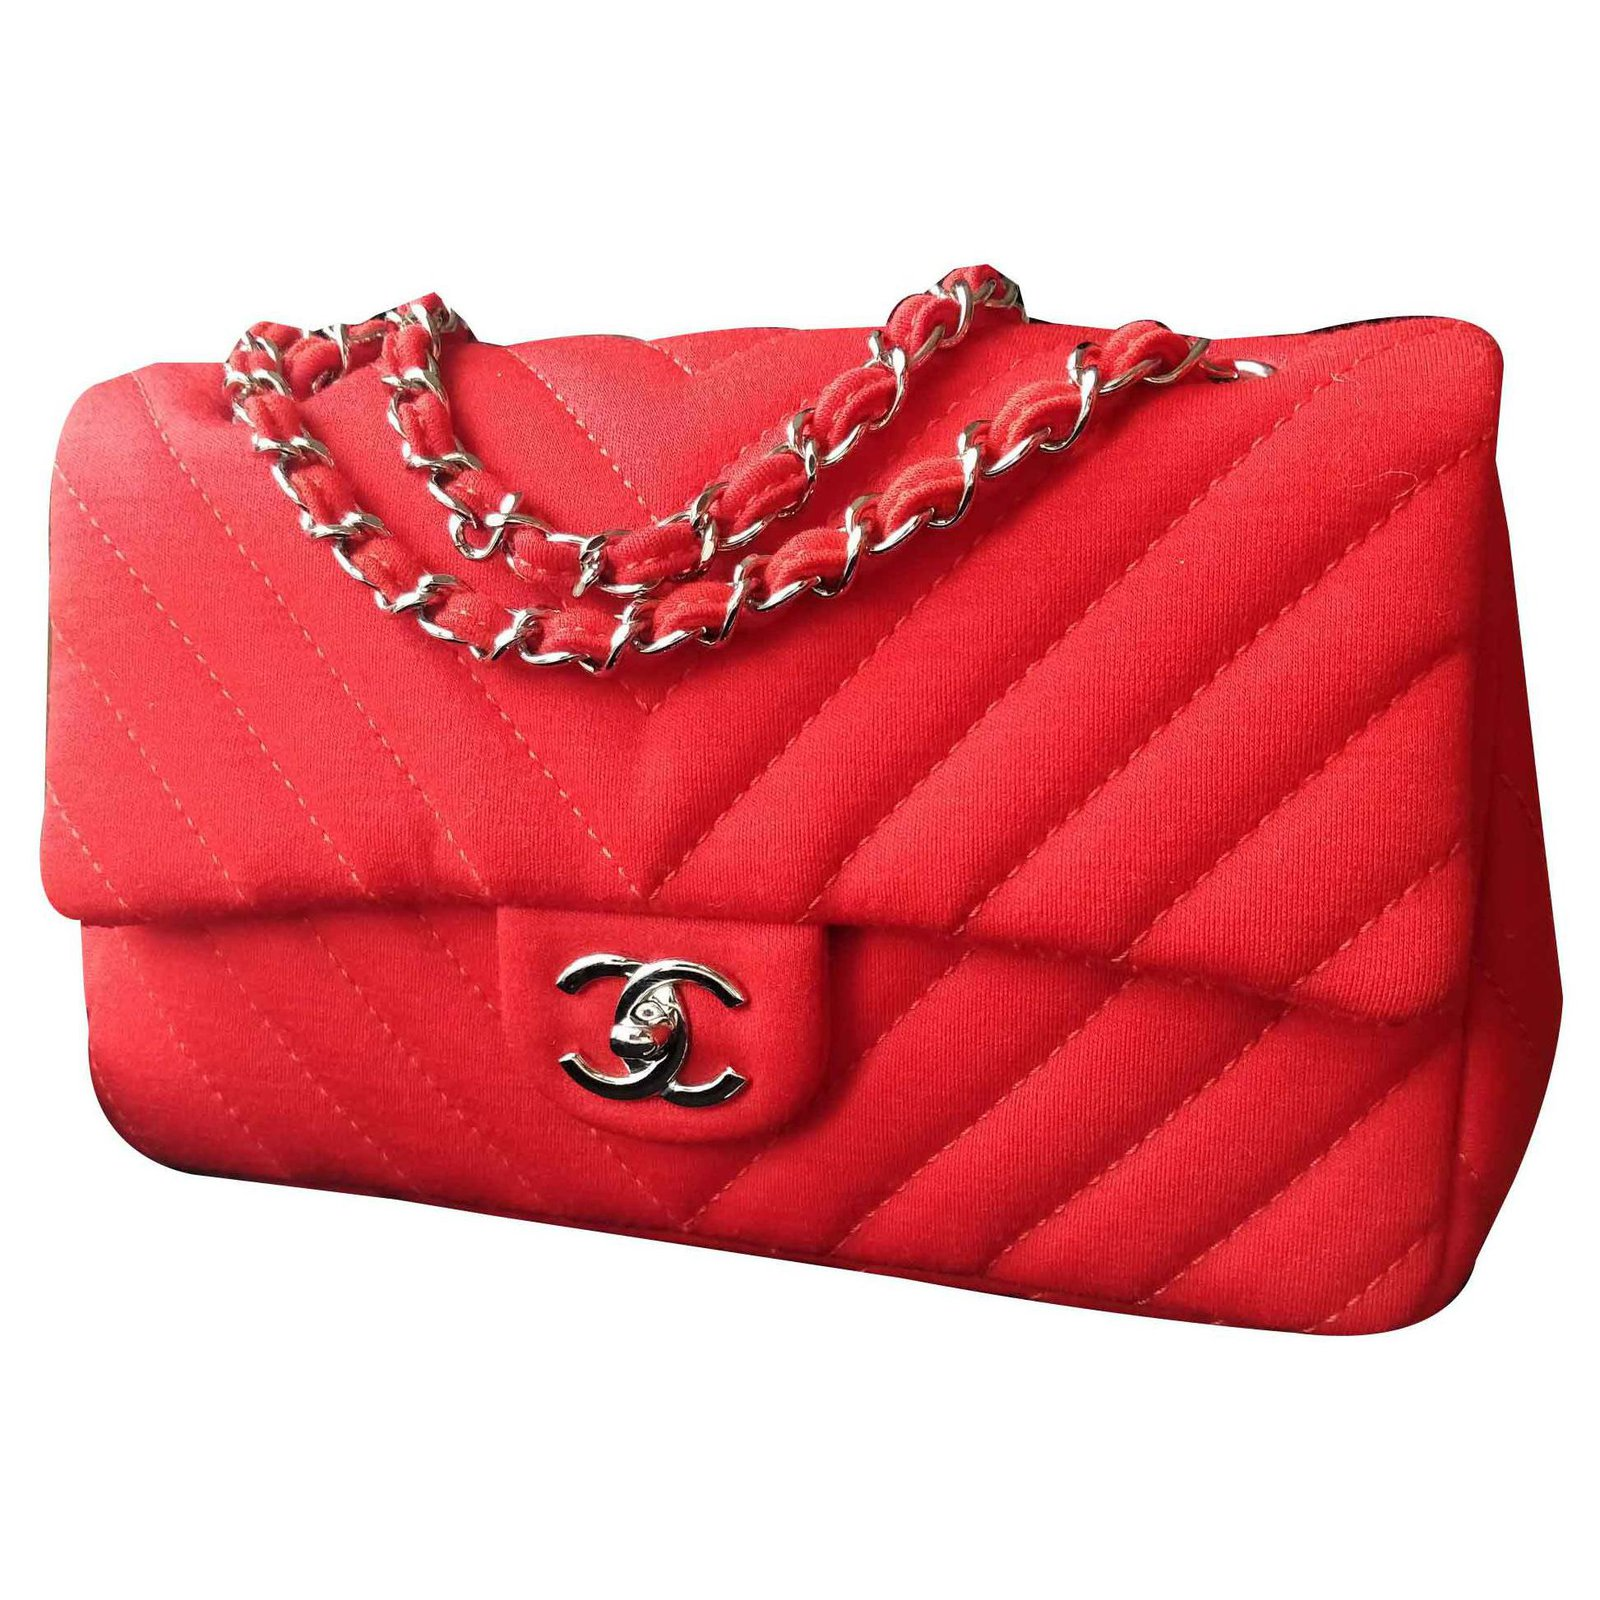 ddf040c4da55ca Chanel Timeless classic flap bag chevron Handbags Cloth Red ref.113395